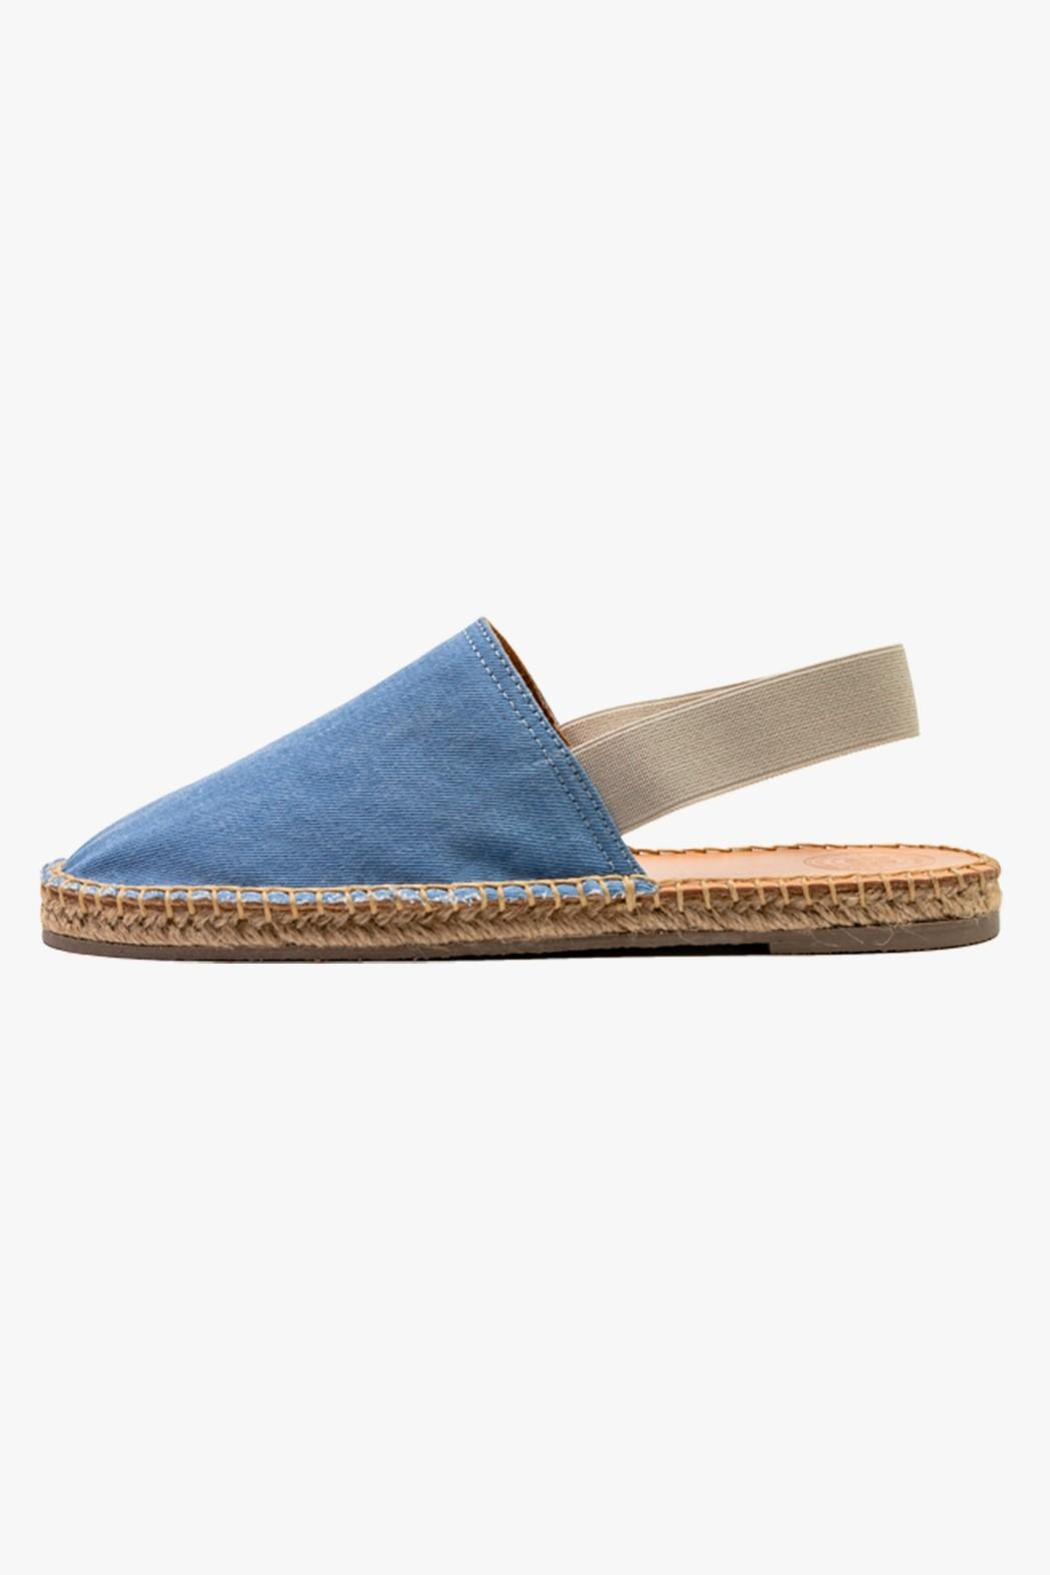 Morkas Shoes Light Blue Textile Mules - Front Cropped Image